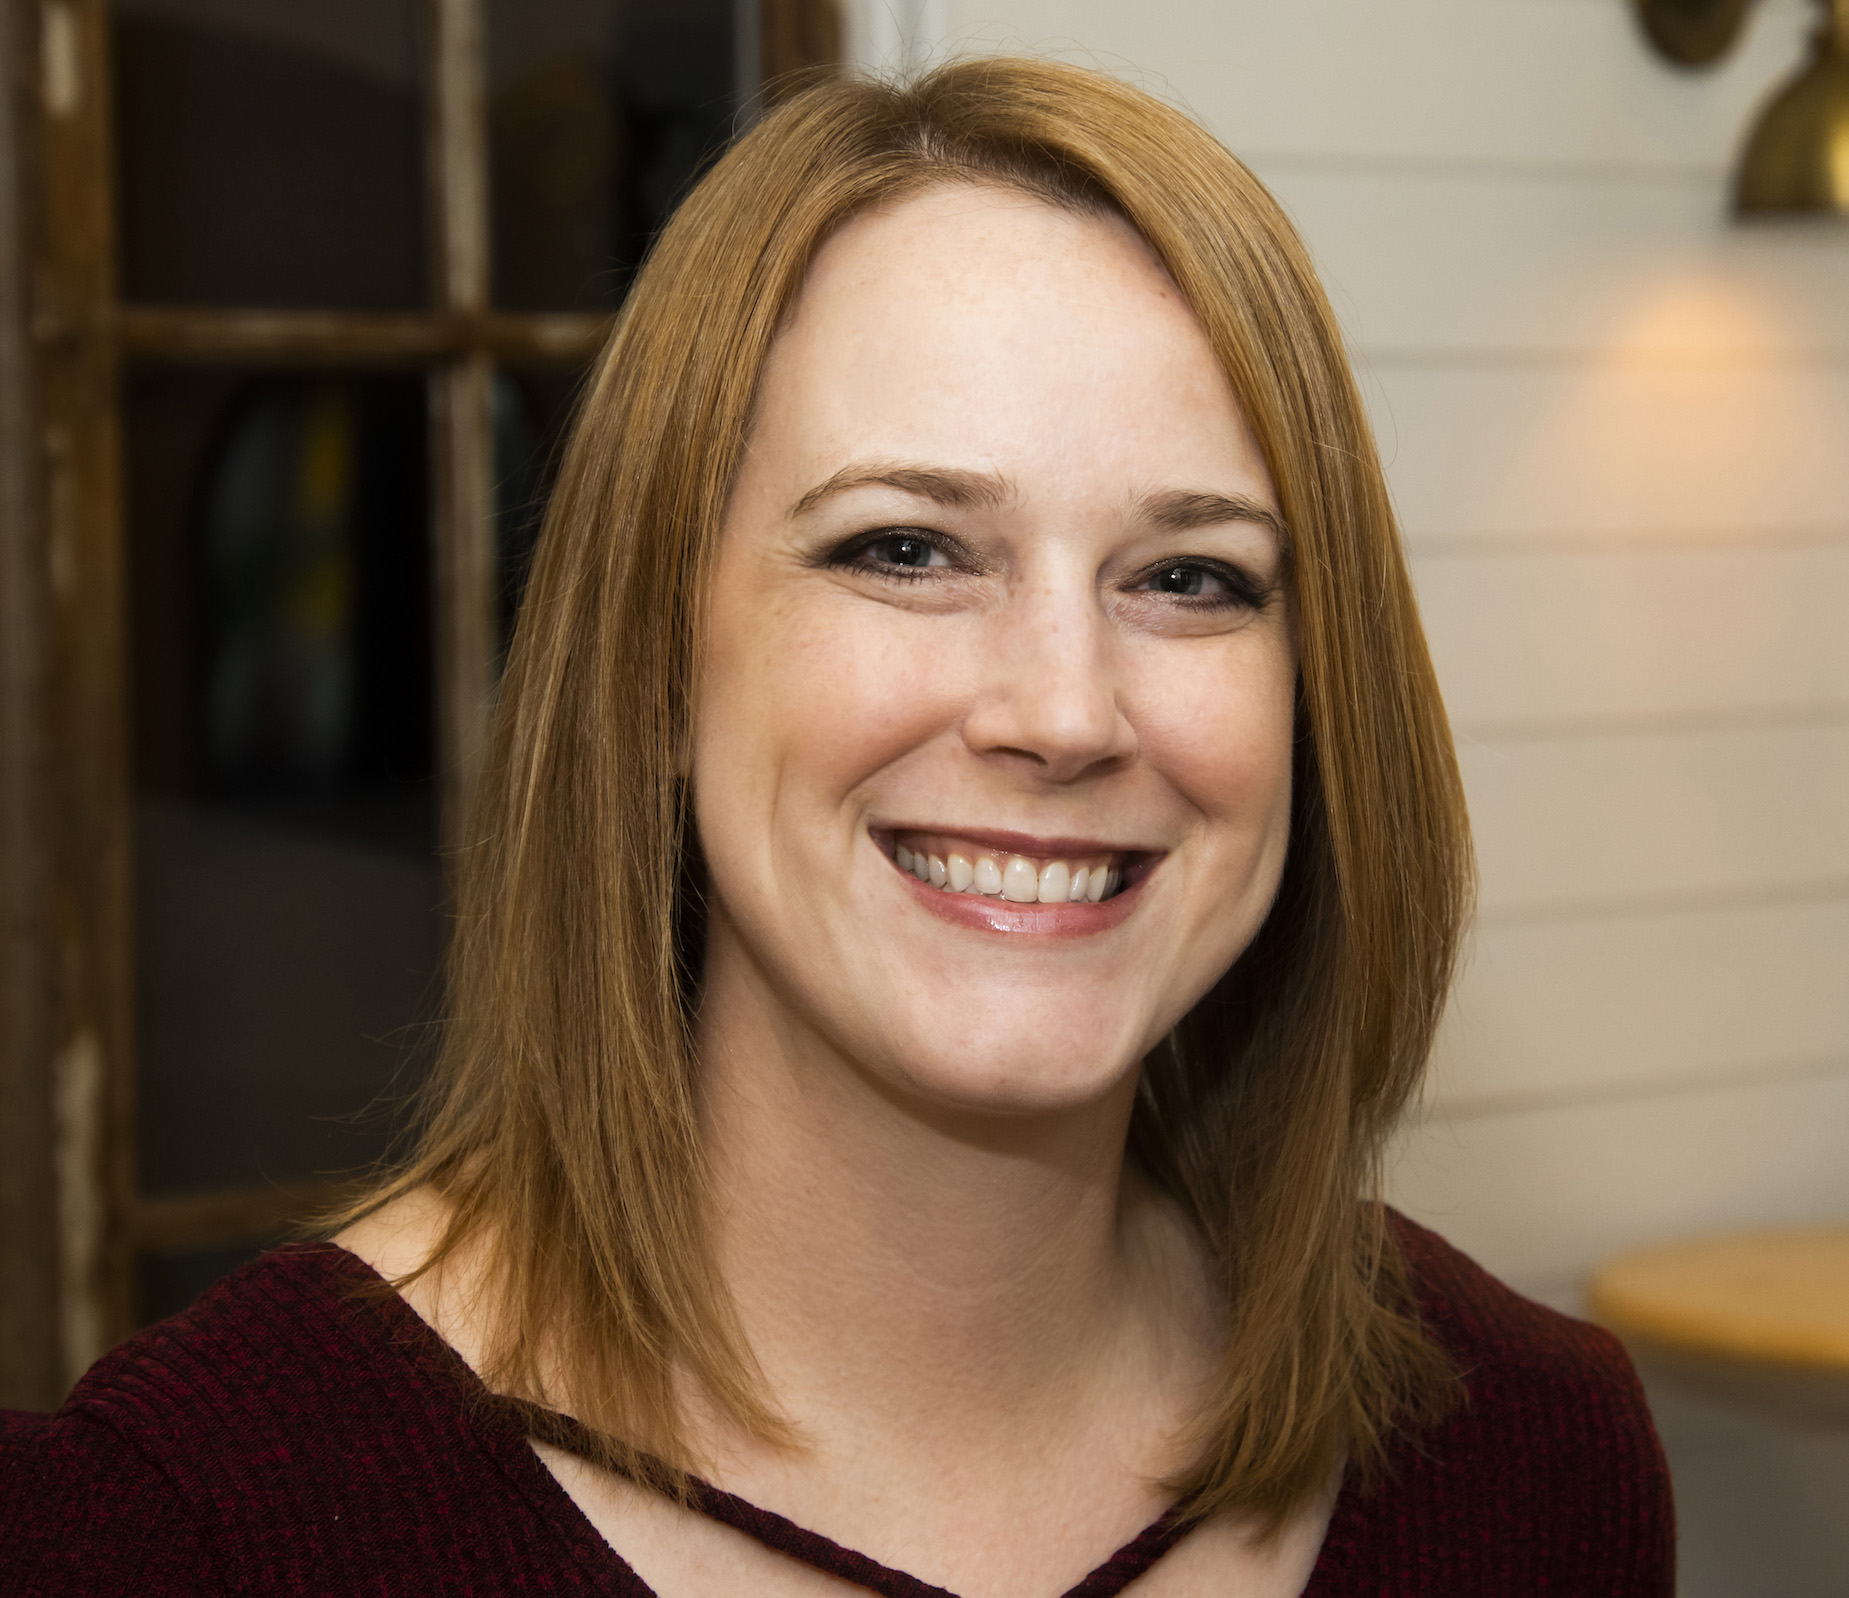 UX Research and Strategy with Emily Tate